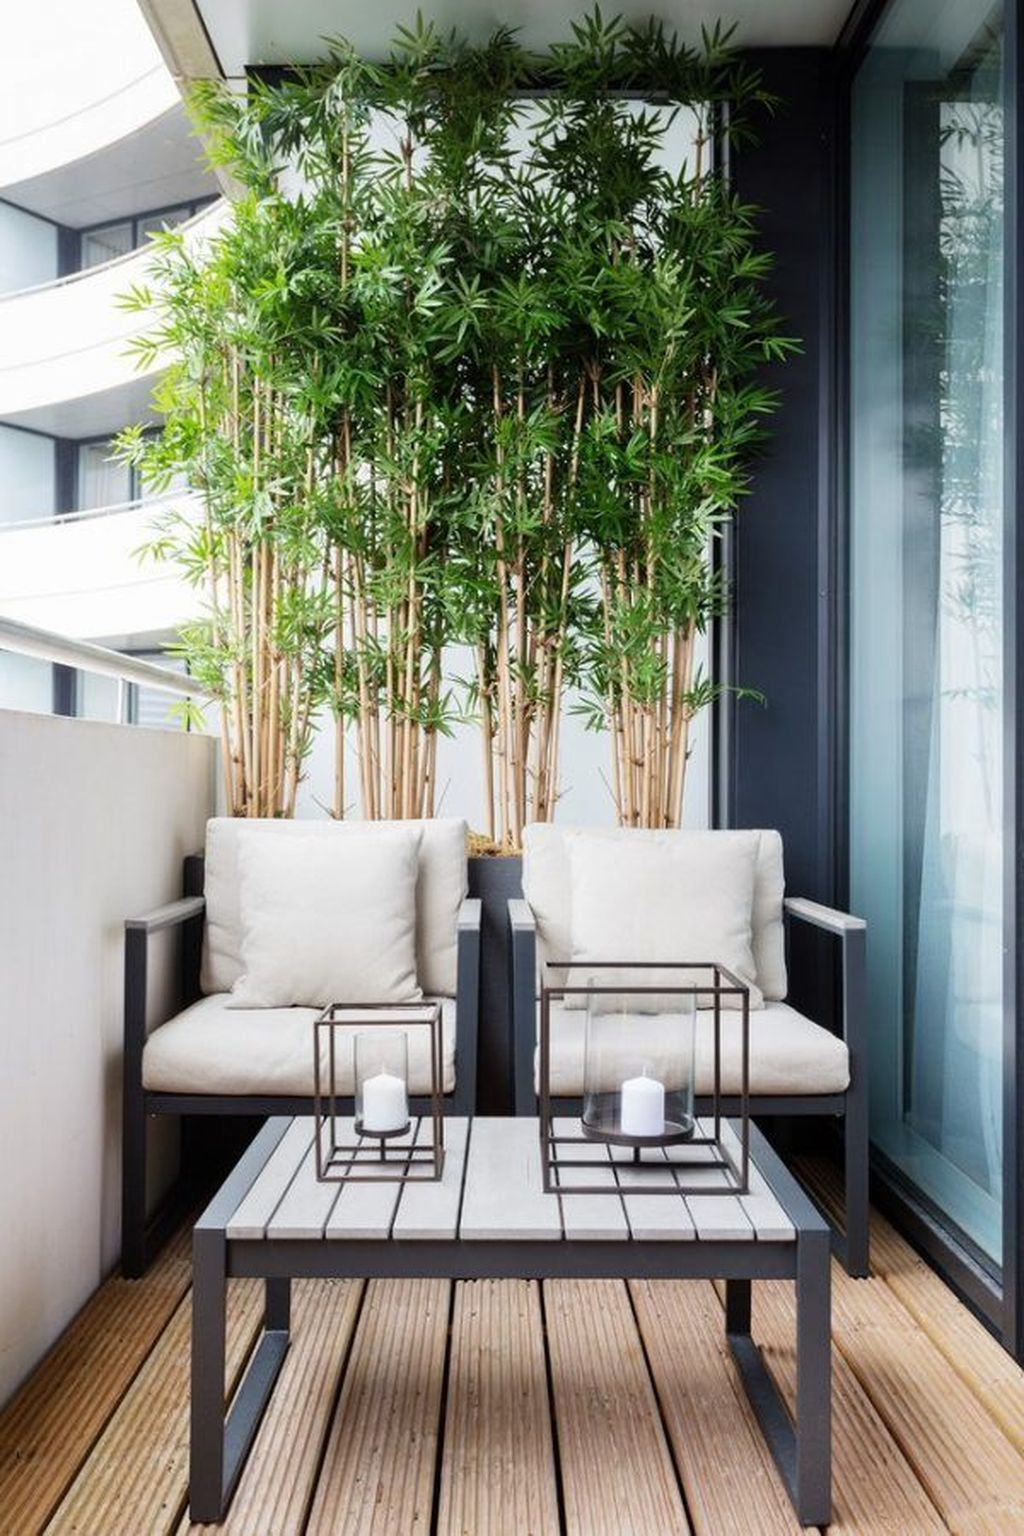 Stunning Apartment Garden Design Ideas 25